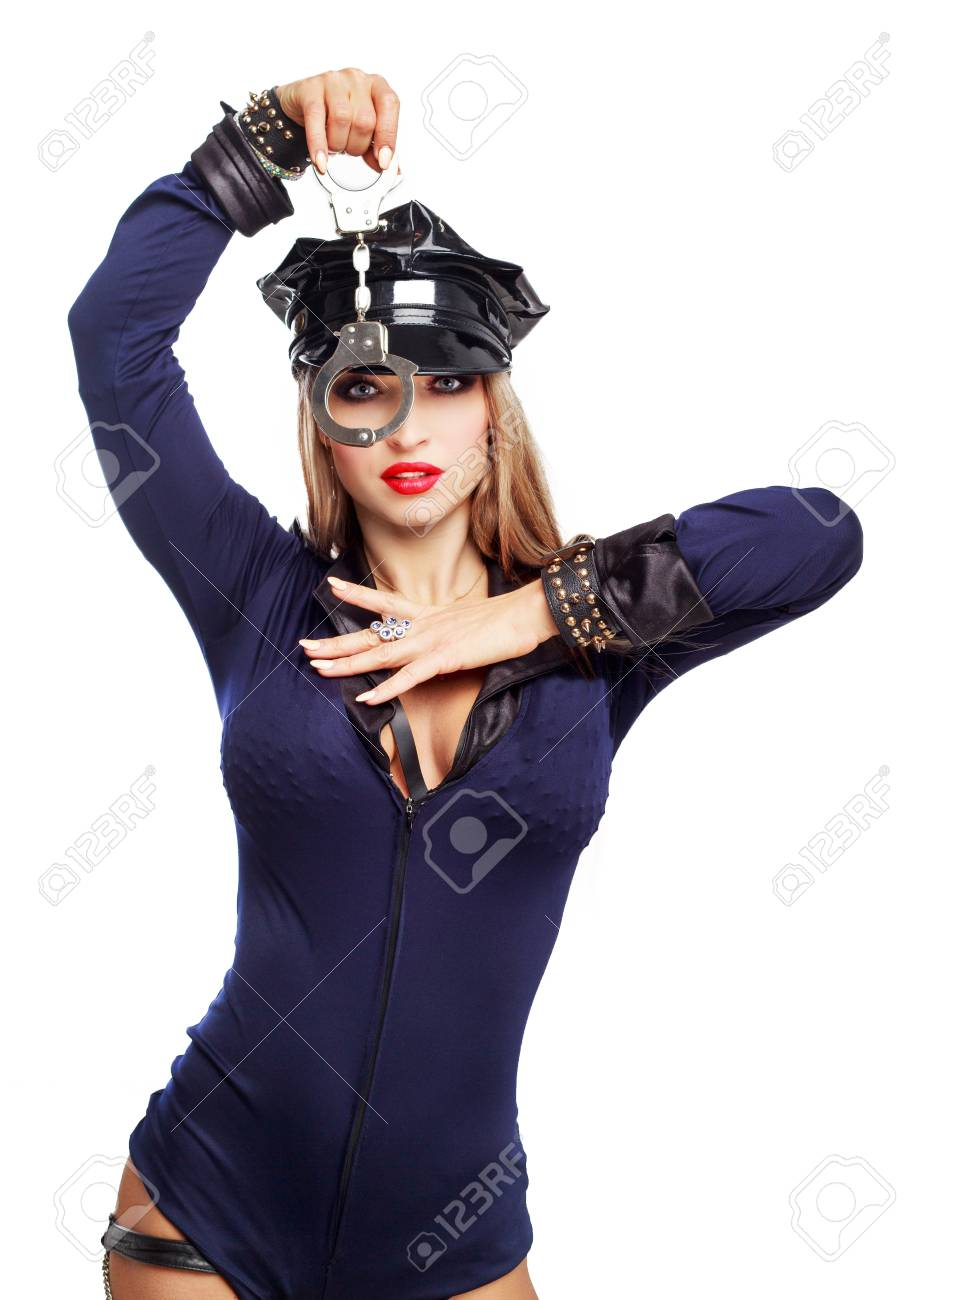 Beautiful Striptease Dancer, Dressed As A Police Officer With Handcuffs  Isolated Against White Background Stock